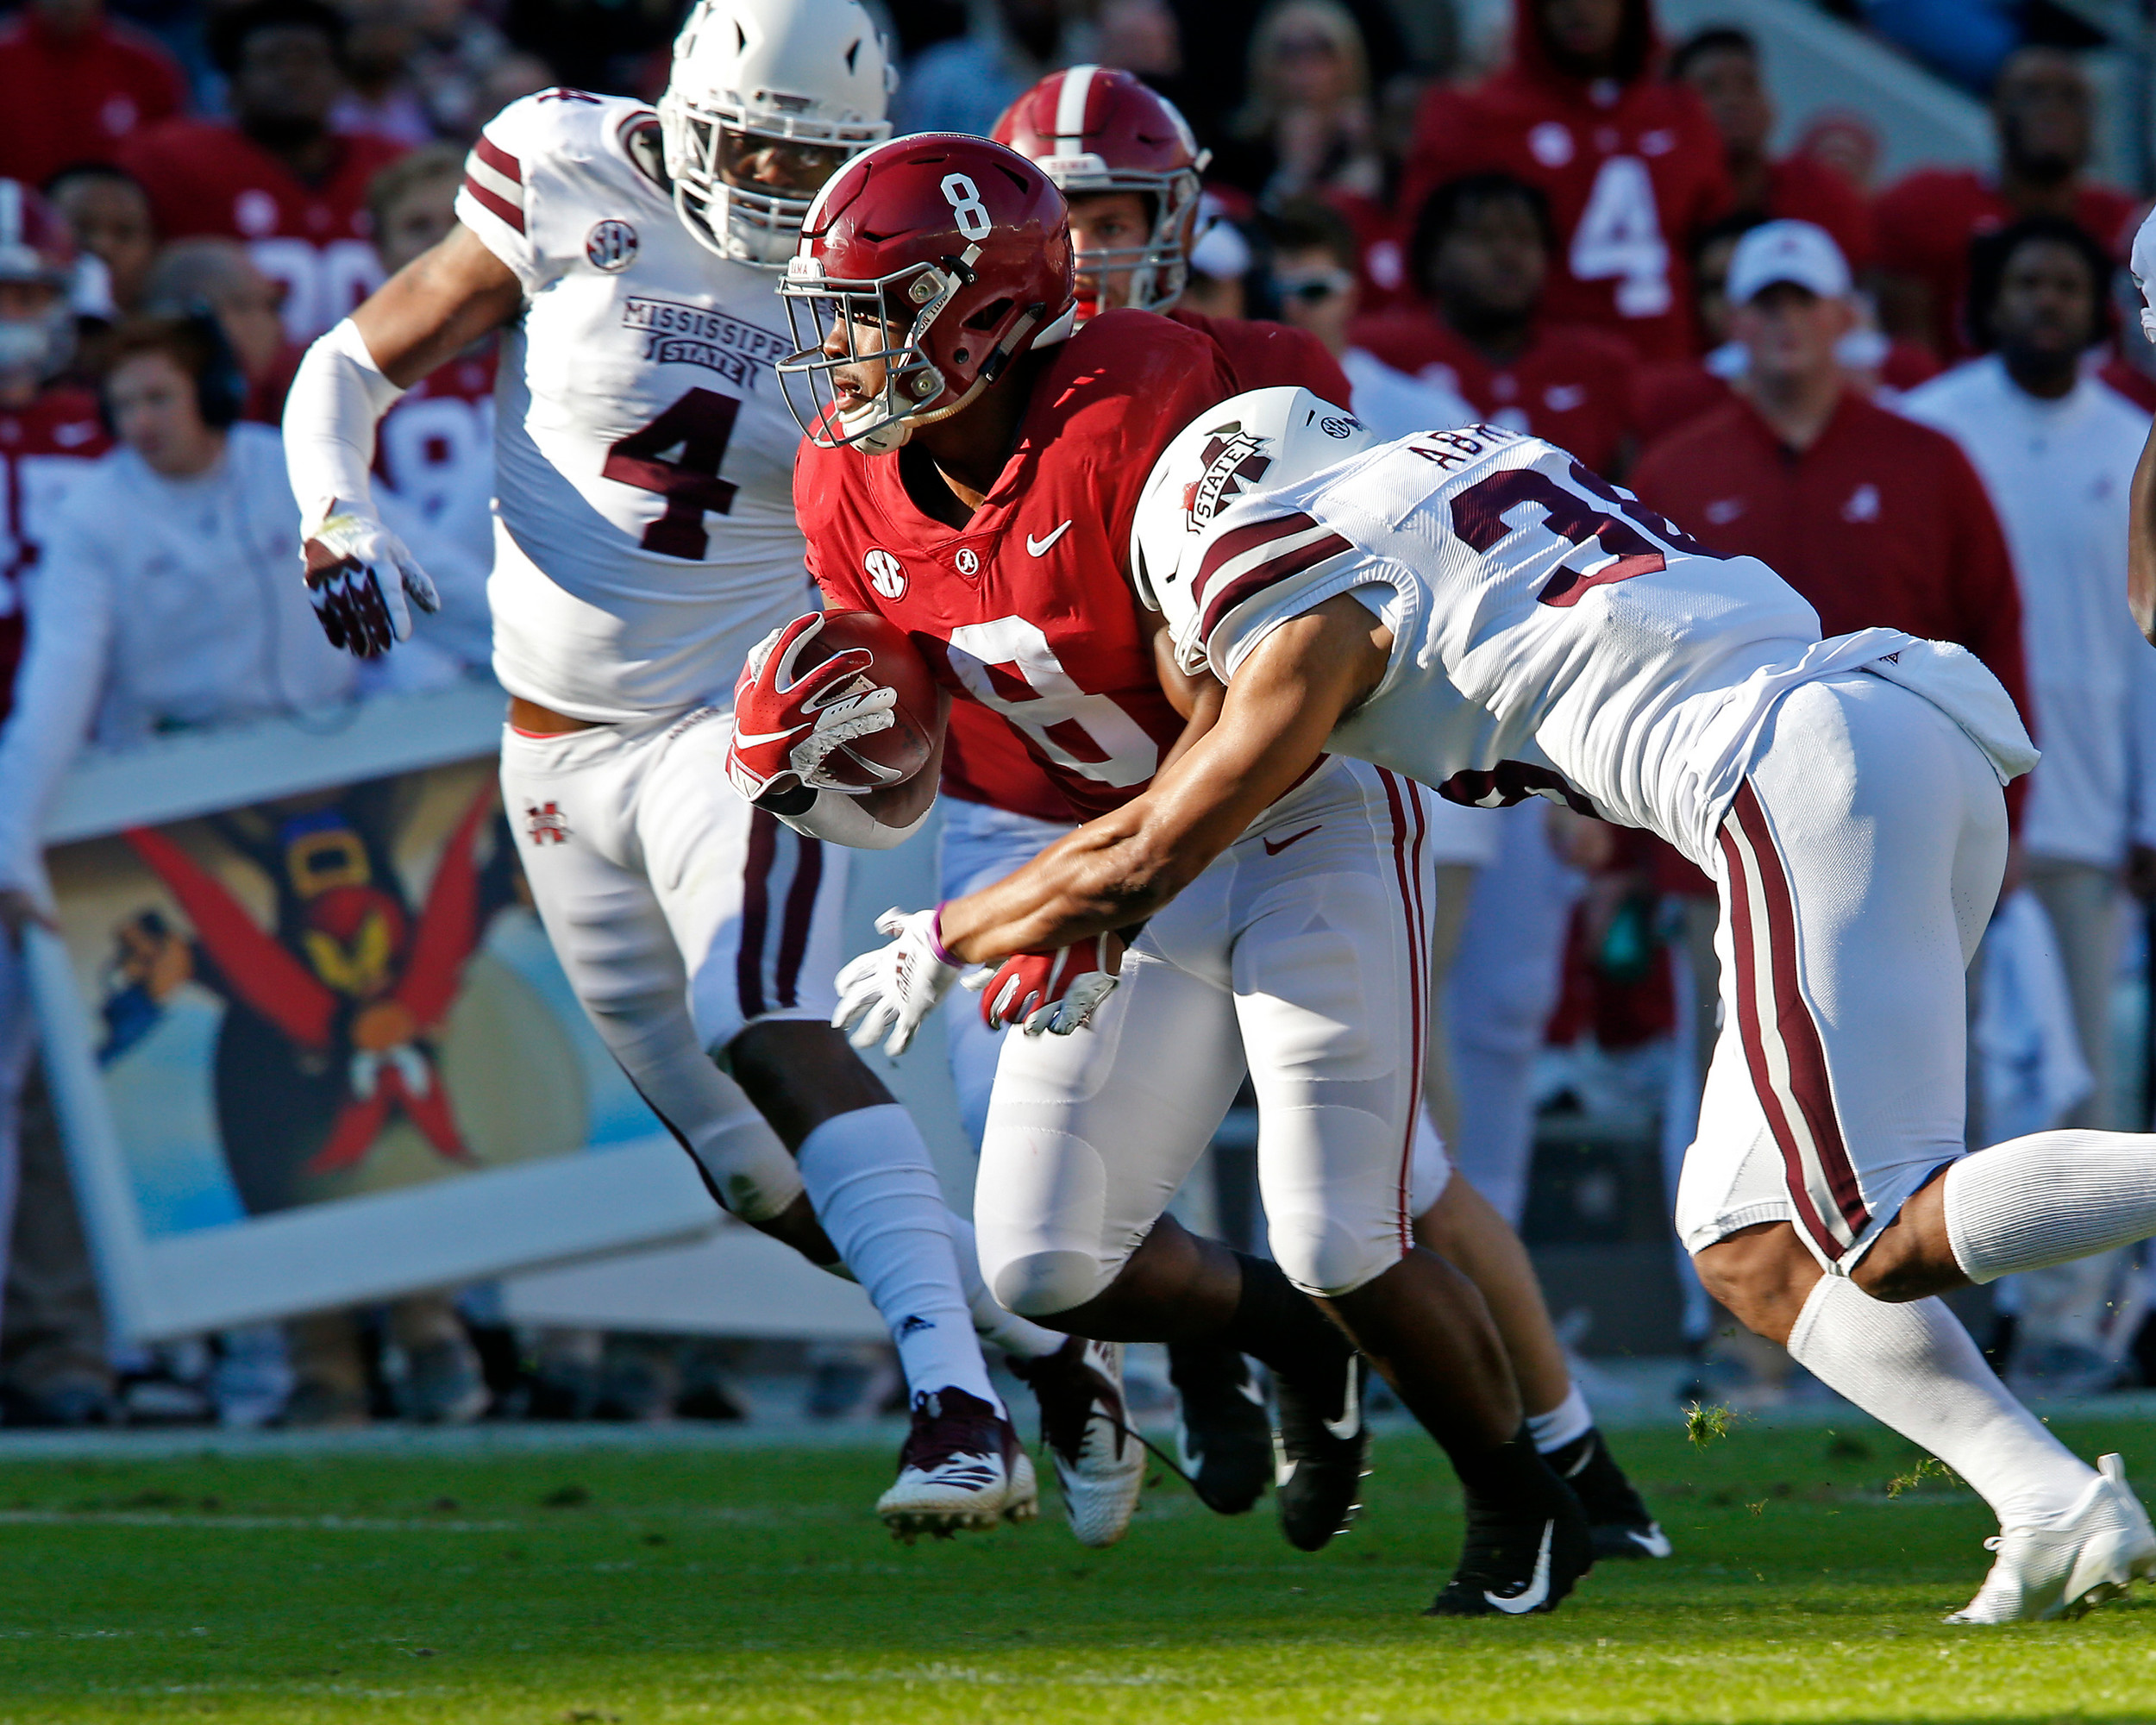 Alabama Crimson Tide running back Josh Jacobs (8) rushes during the game between Mississippi State and the University of Alabama at Bryant-Denny Stadium in Tuscaloosa, Al. Credit: Jason Clark / Daily Mountain Eagle